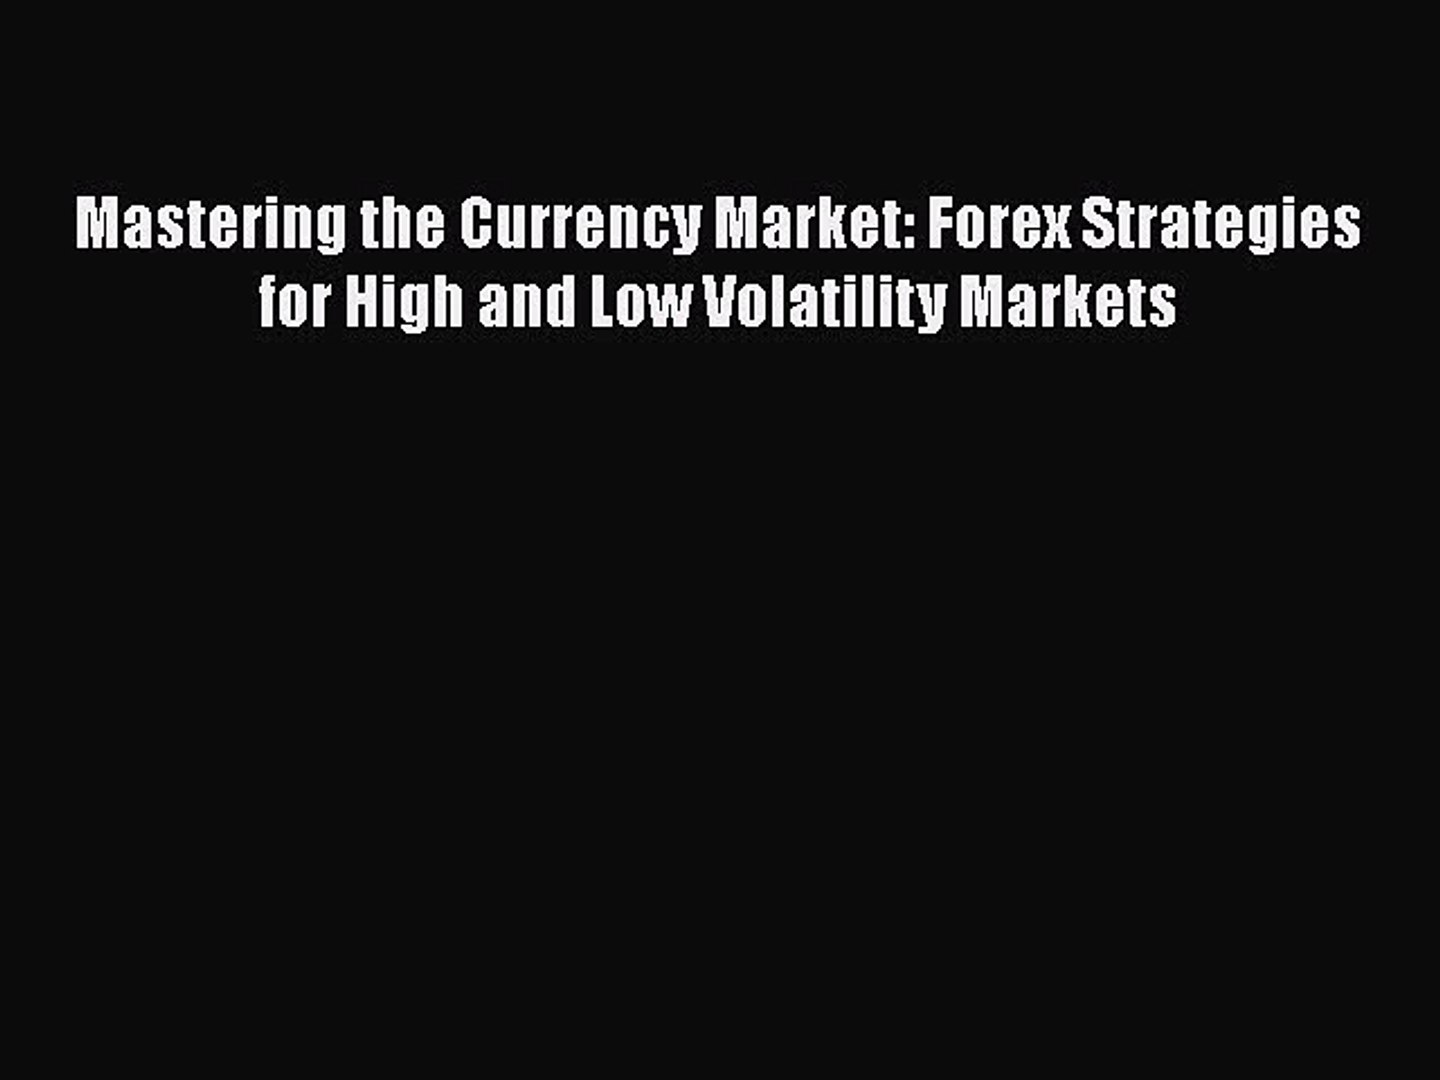 Download Mastering the Currency Market: Forex Strategies for High and Low Volatility Markets